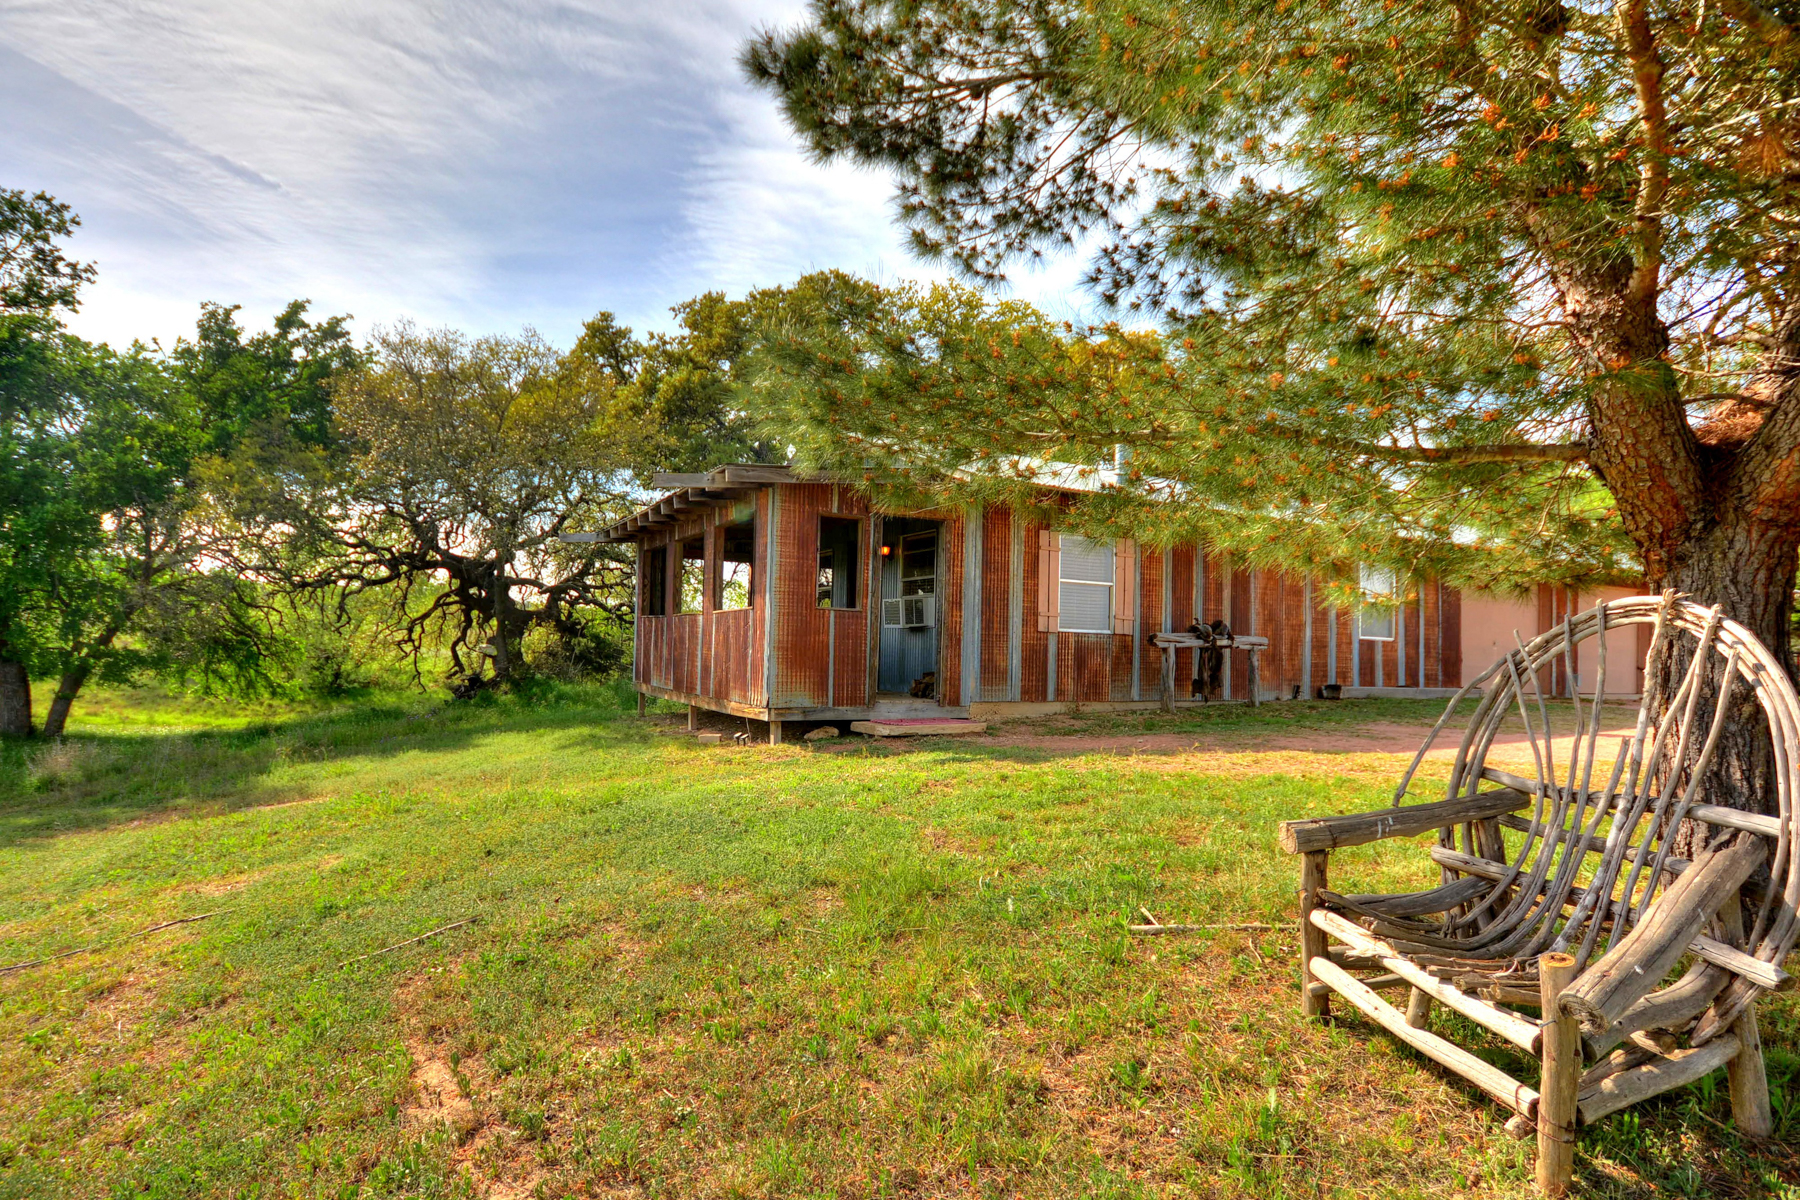 Additional photo for property listing at Amazing Fredericksburg Property 457 Bob Moritz Fredericksburg, Texas 78624 Estados Unidos